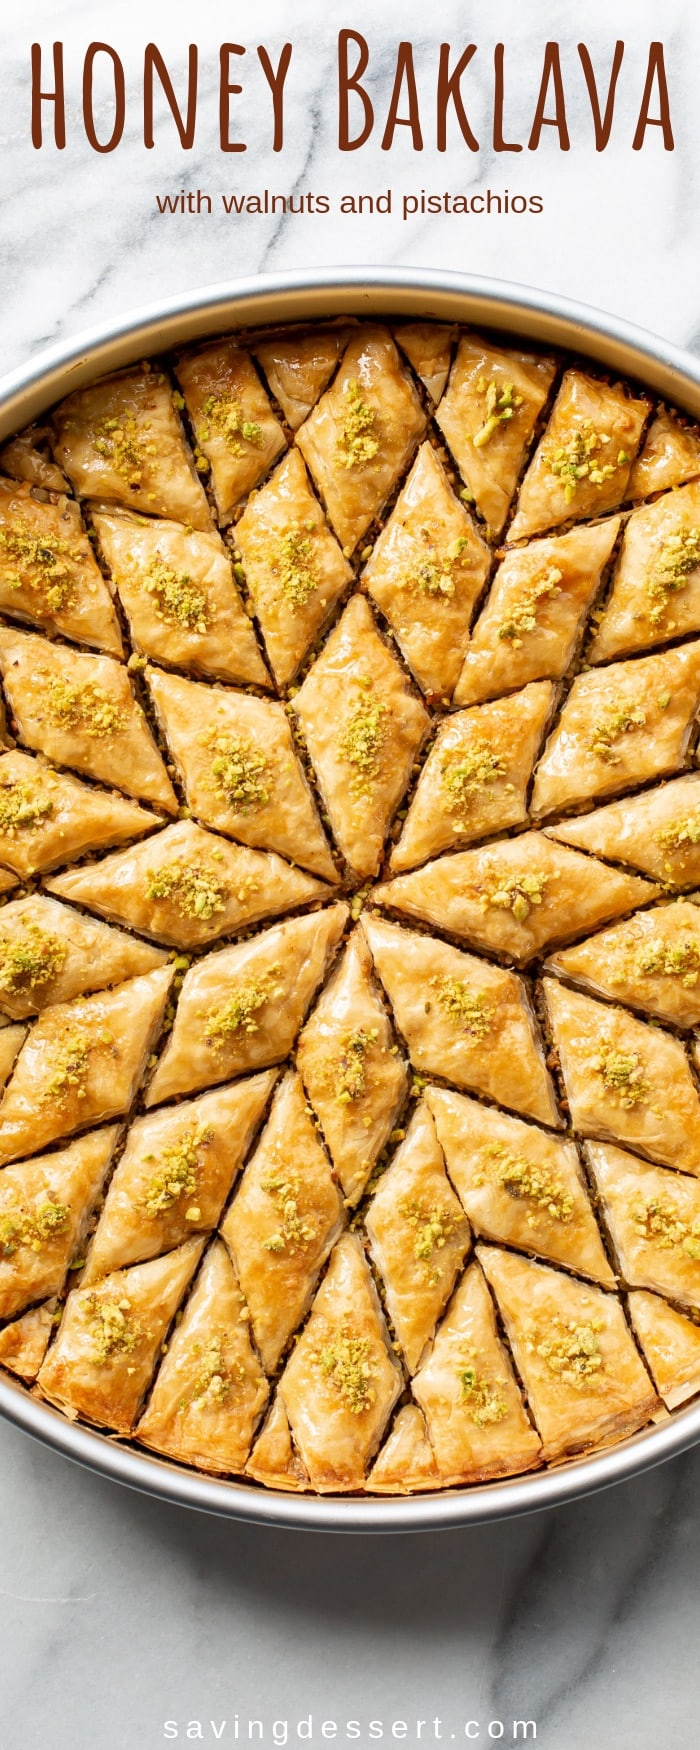 Honey Baklava Recipe with Walnuts and Pistachios - layers and layers of flaky phyllo slathered with melted butter, honey and loads of nuts - who can resist a slice of this delicious Honey Baklava Recipe?! #savingroomfordessert #baklava #honeybaklava #pistachiobaklava #walnutbaklava #Greekbaklava #honey #dessert